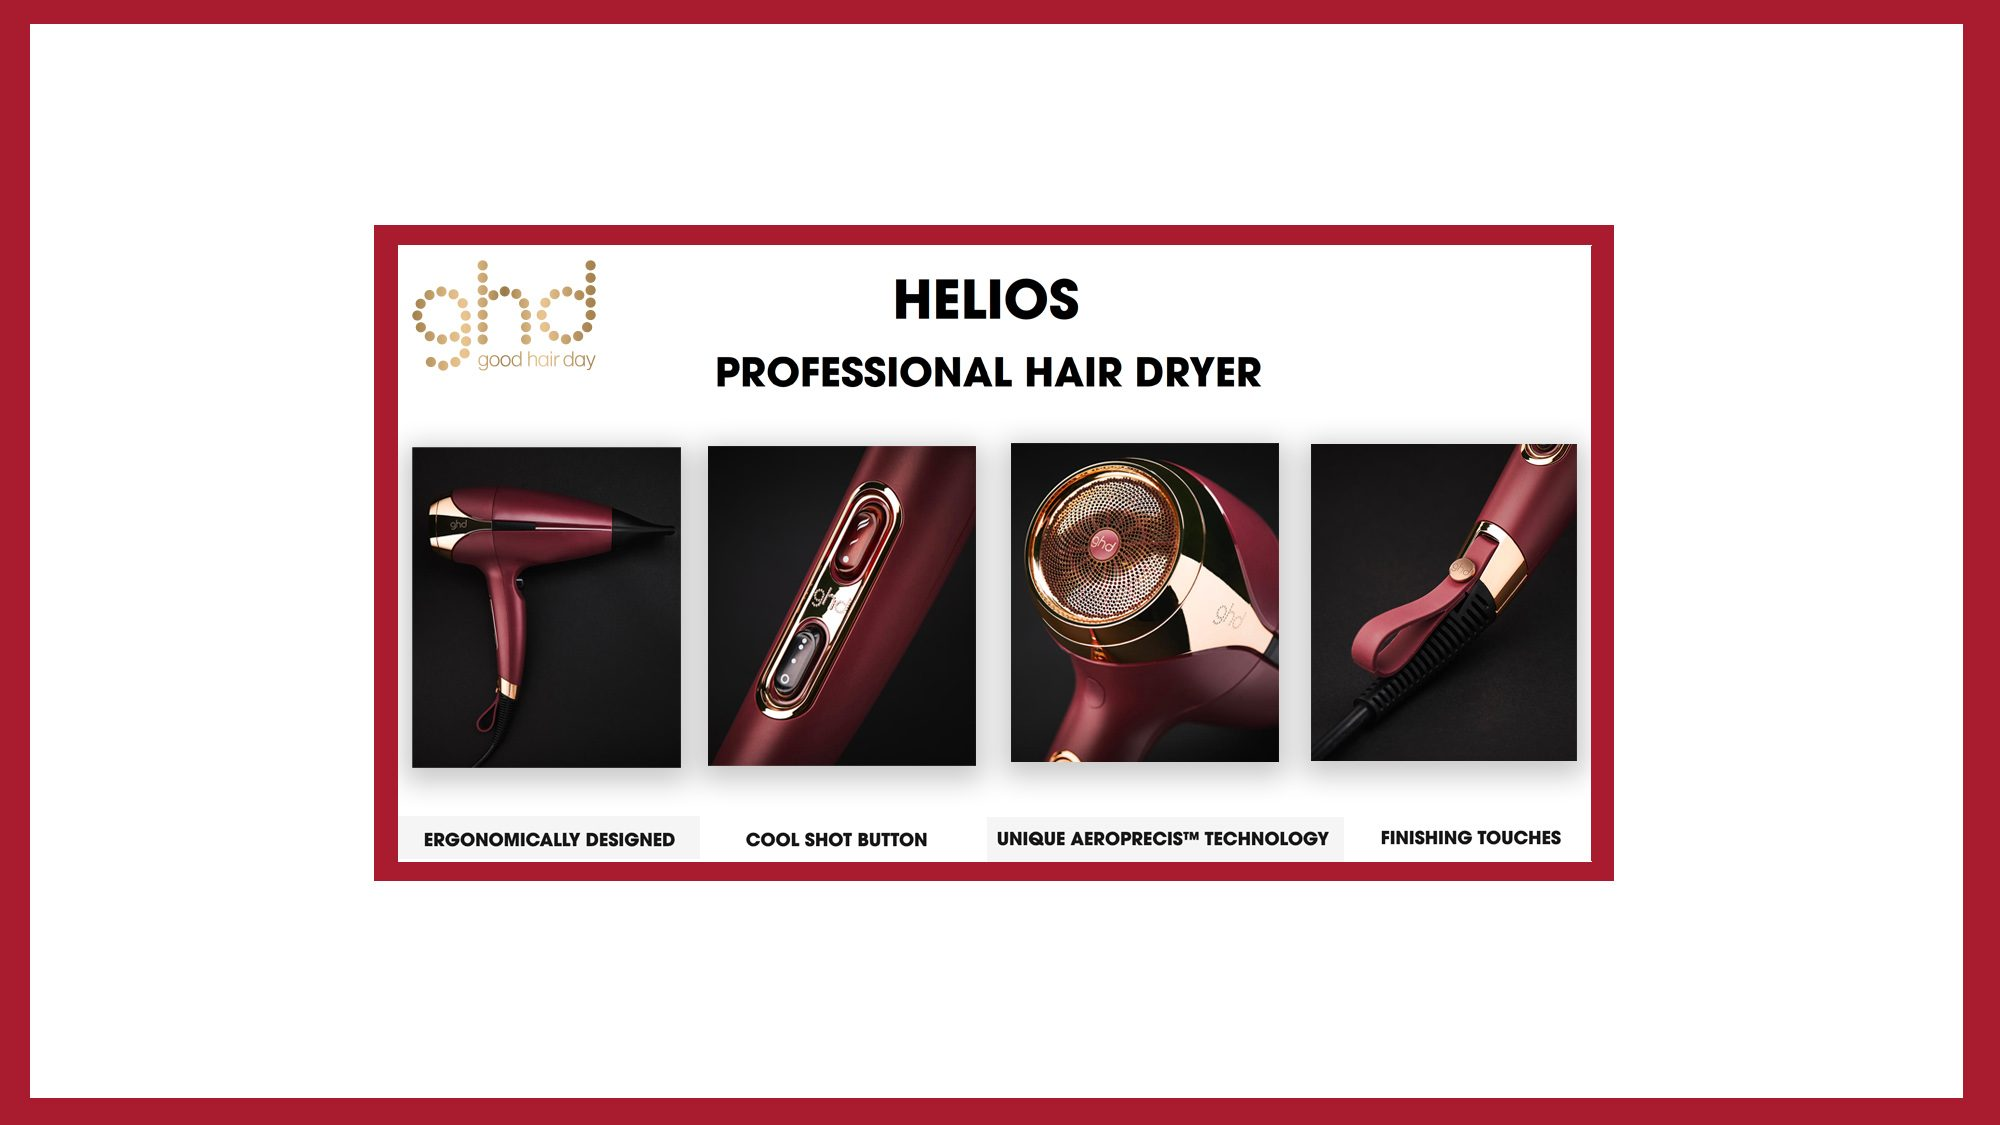 ghd NEW Helios Professional Hair Dryer Blow Dry Red Banner 2020